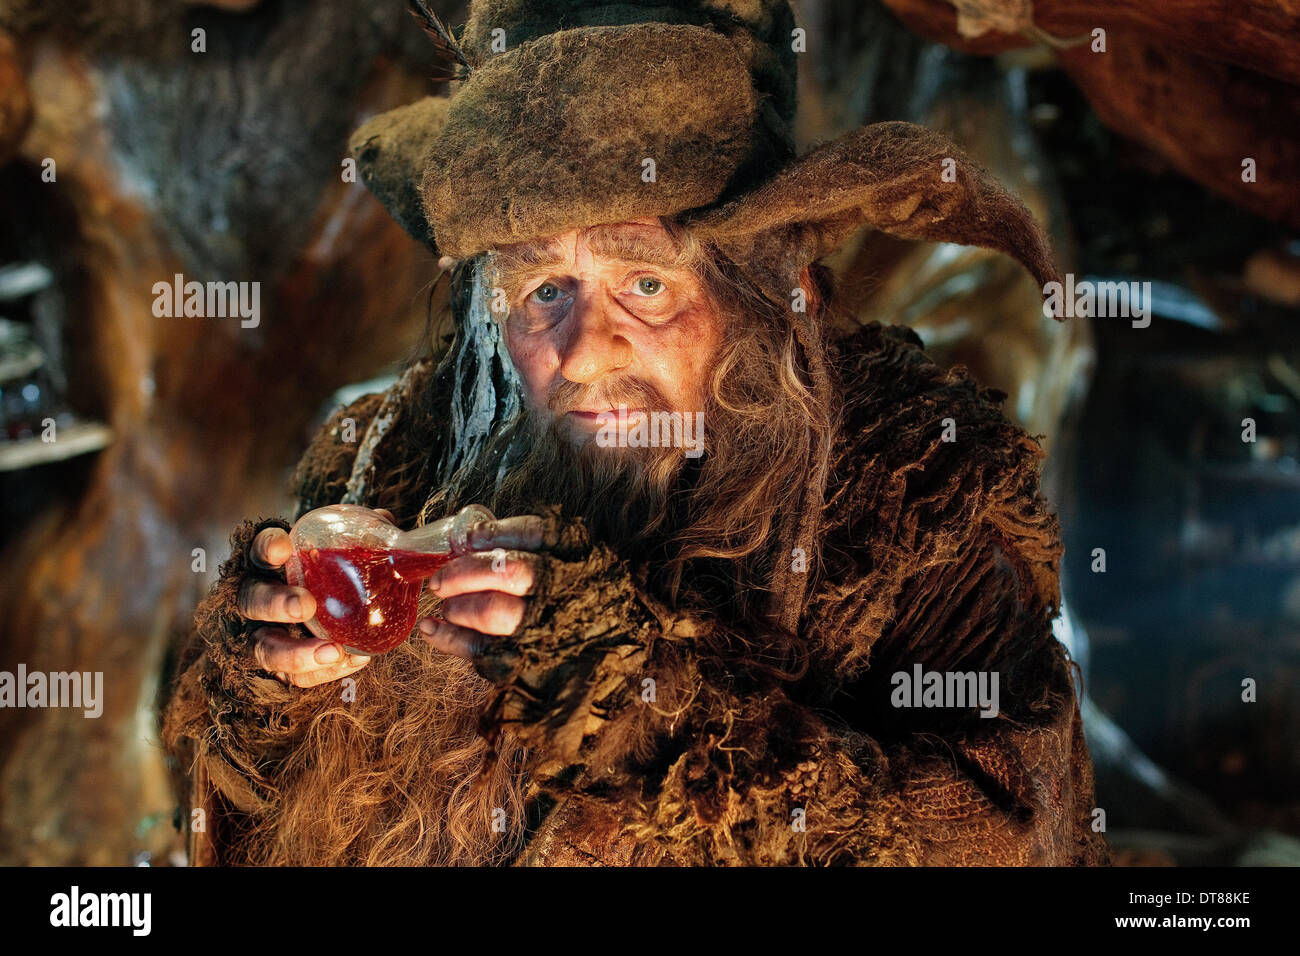 SYLVESTER MCCOY THE HOBBIT: AN UNEXPECTED JOURNEY (2012) - Stock Image